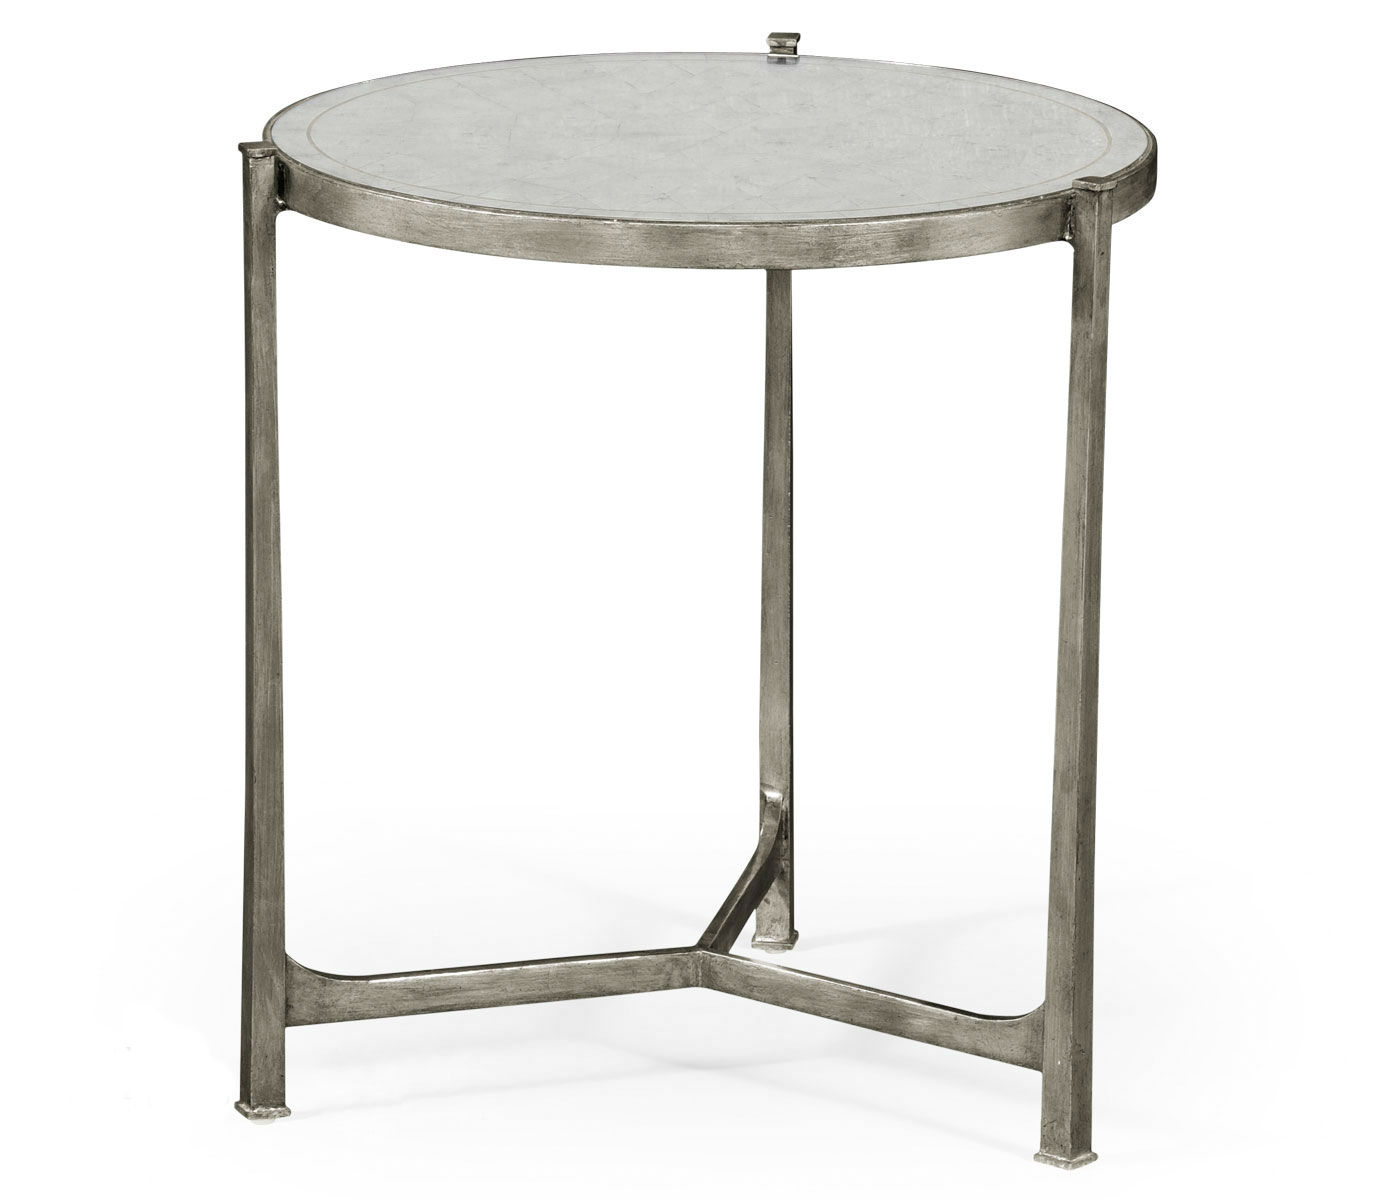 silver side table tables end small accent elegant tall antiqued mirrored partner console coffee available hospitality residential white living room chairs high and modern lamp